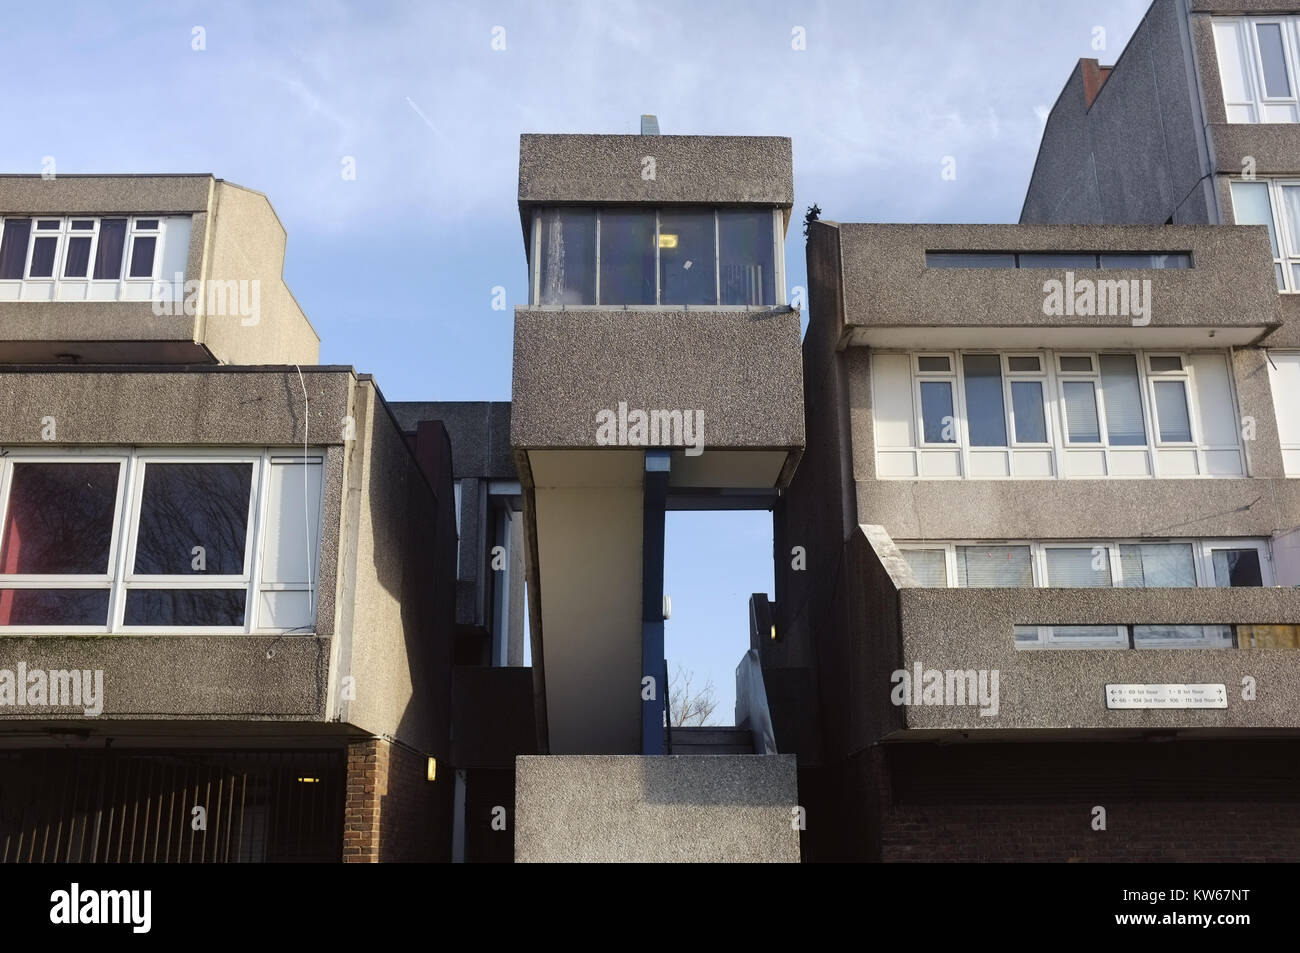 Post-war housing estate, Thamesmead, near Abbey Wood, south-east London, England, United Kingdom, 18 December 2017 - Stock Image